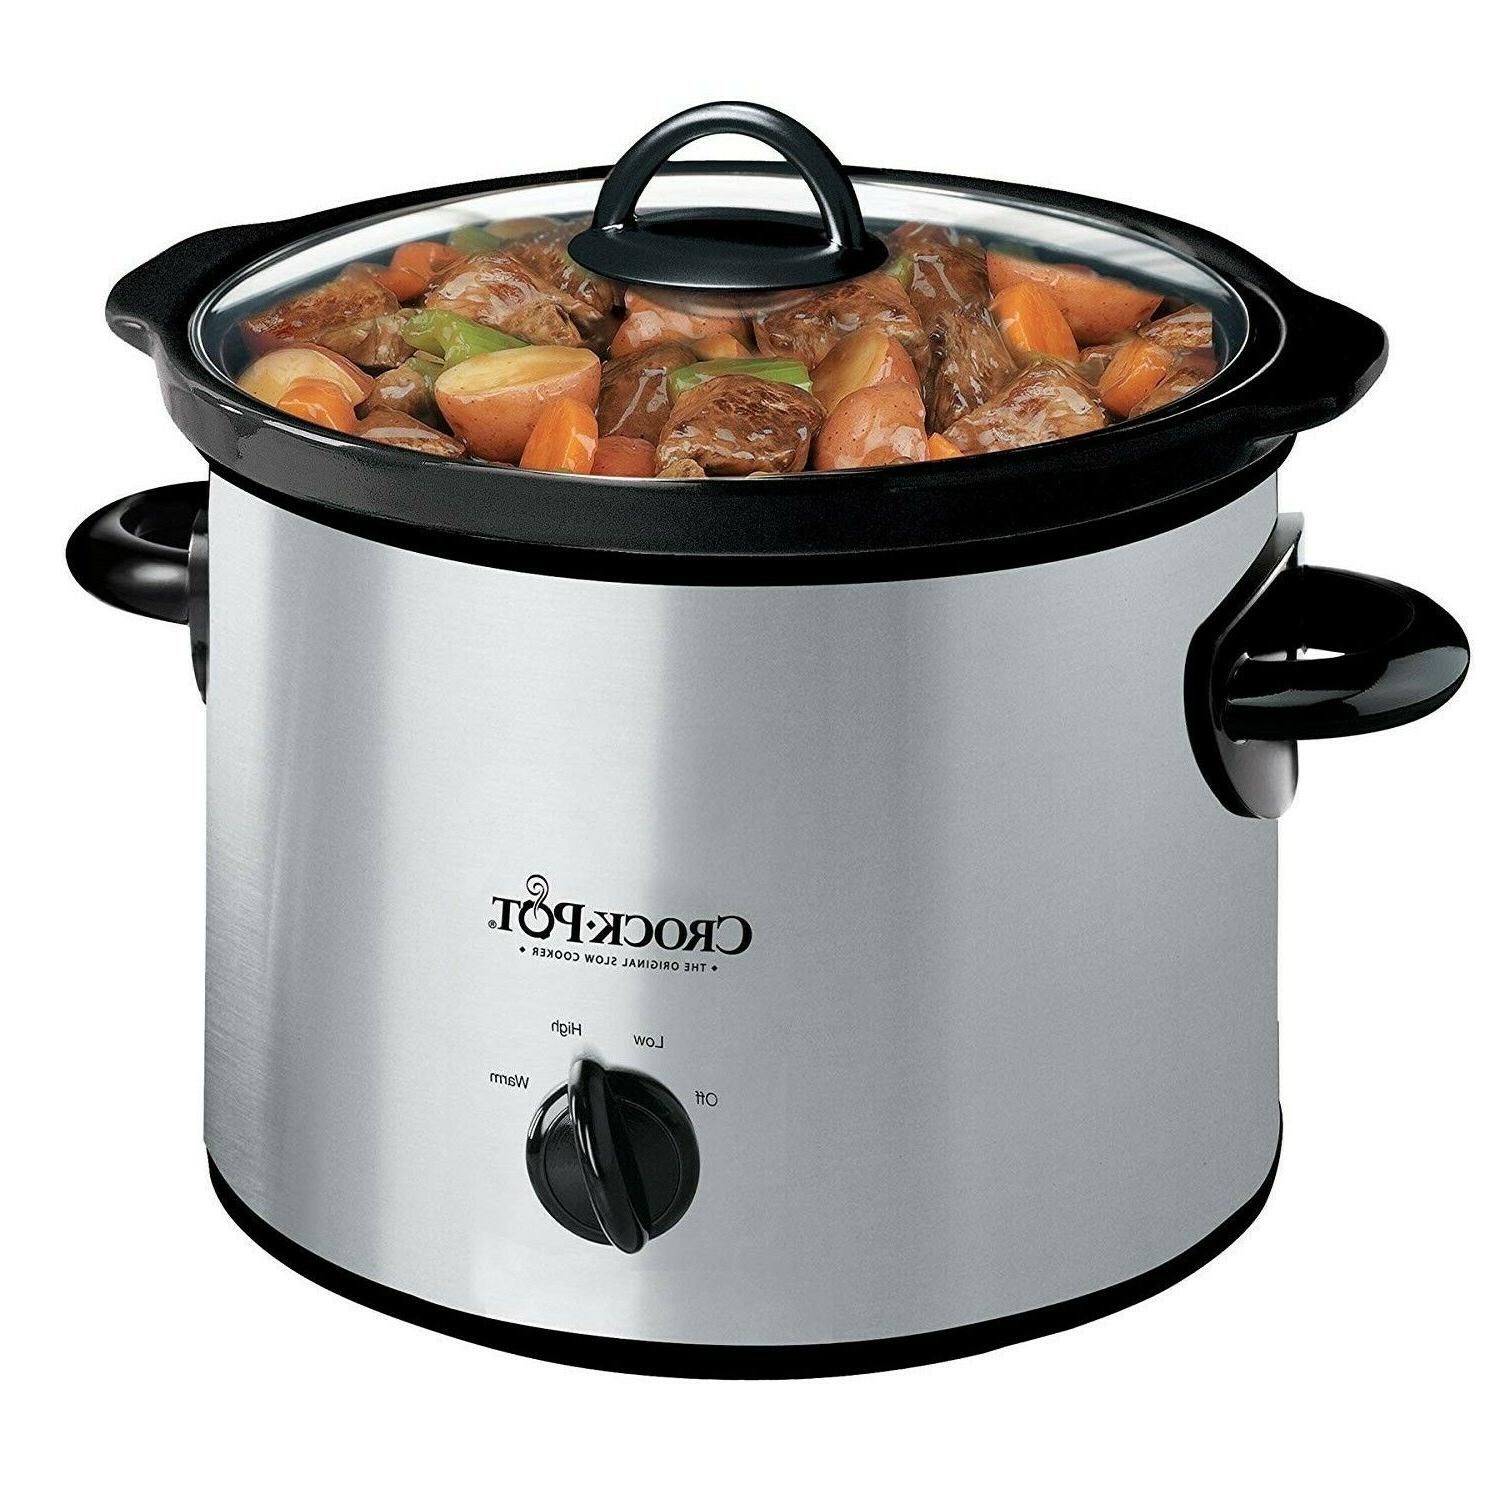 3Qt Slow Cooker Manual Stainless Steel Dishwasher Safe High